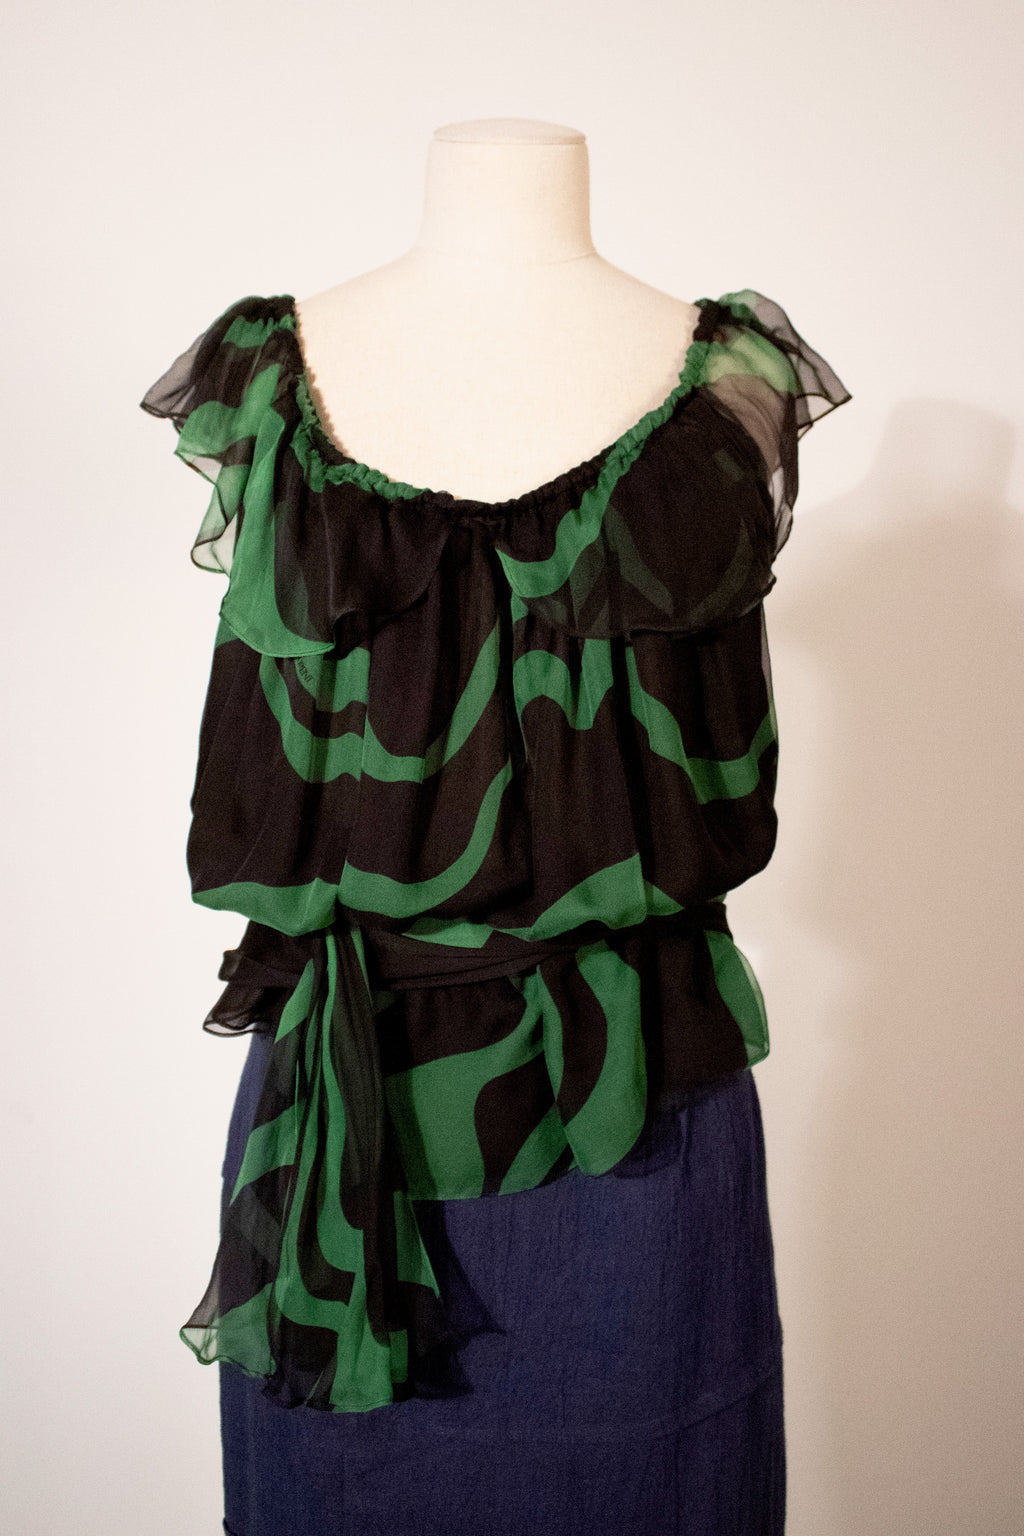 Yves Saint Laurent by Tom Ford green silk monogran blouse